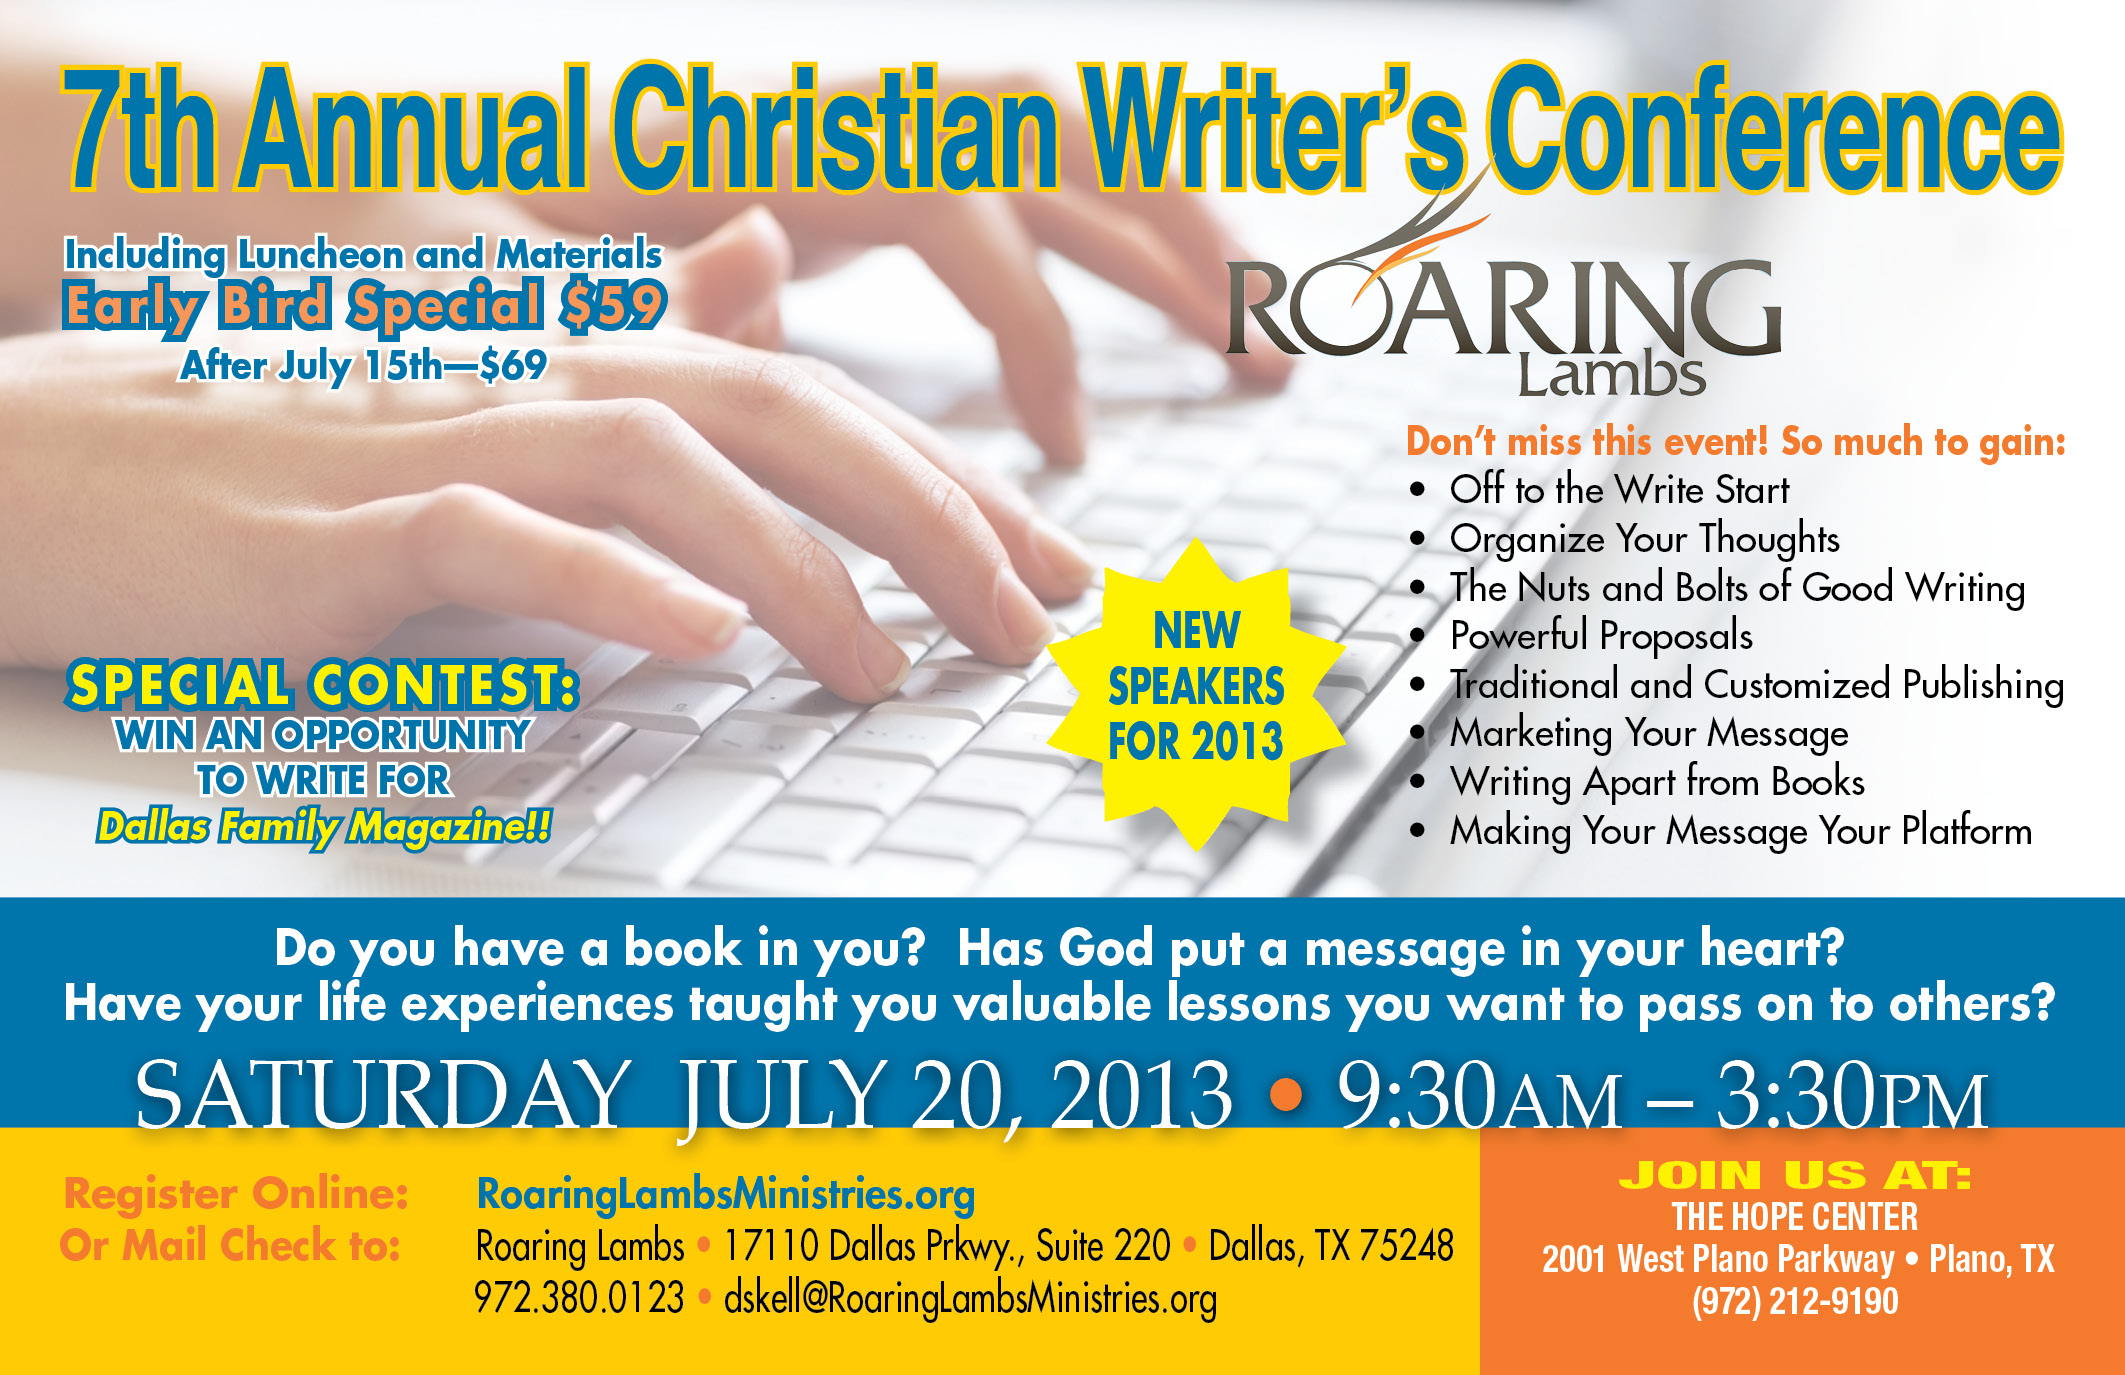 2013 Annual Christian Writer's Conference